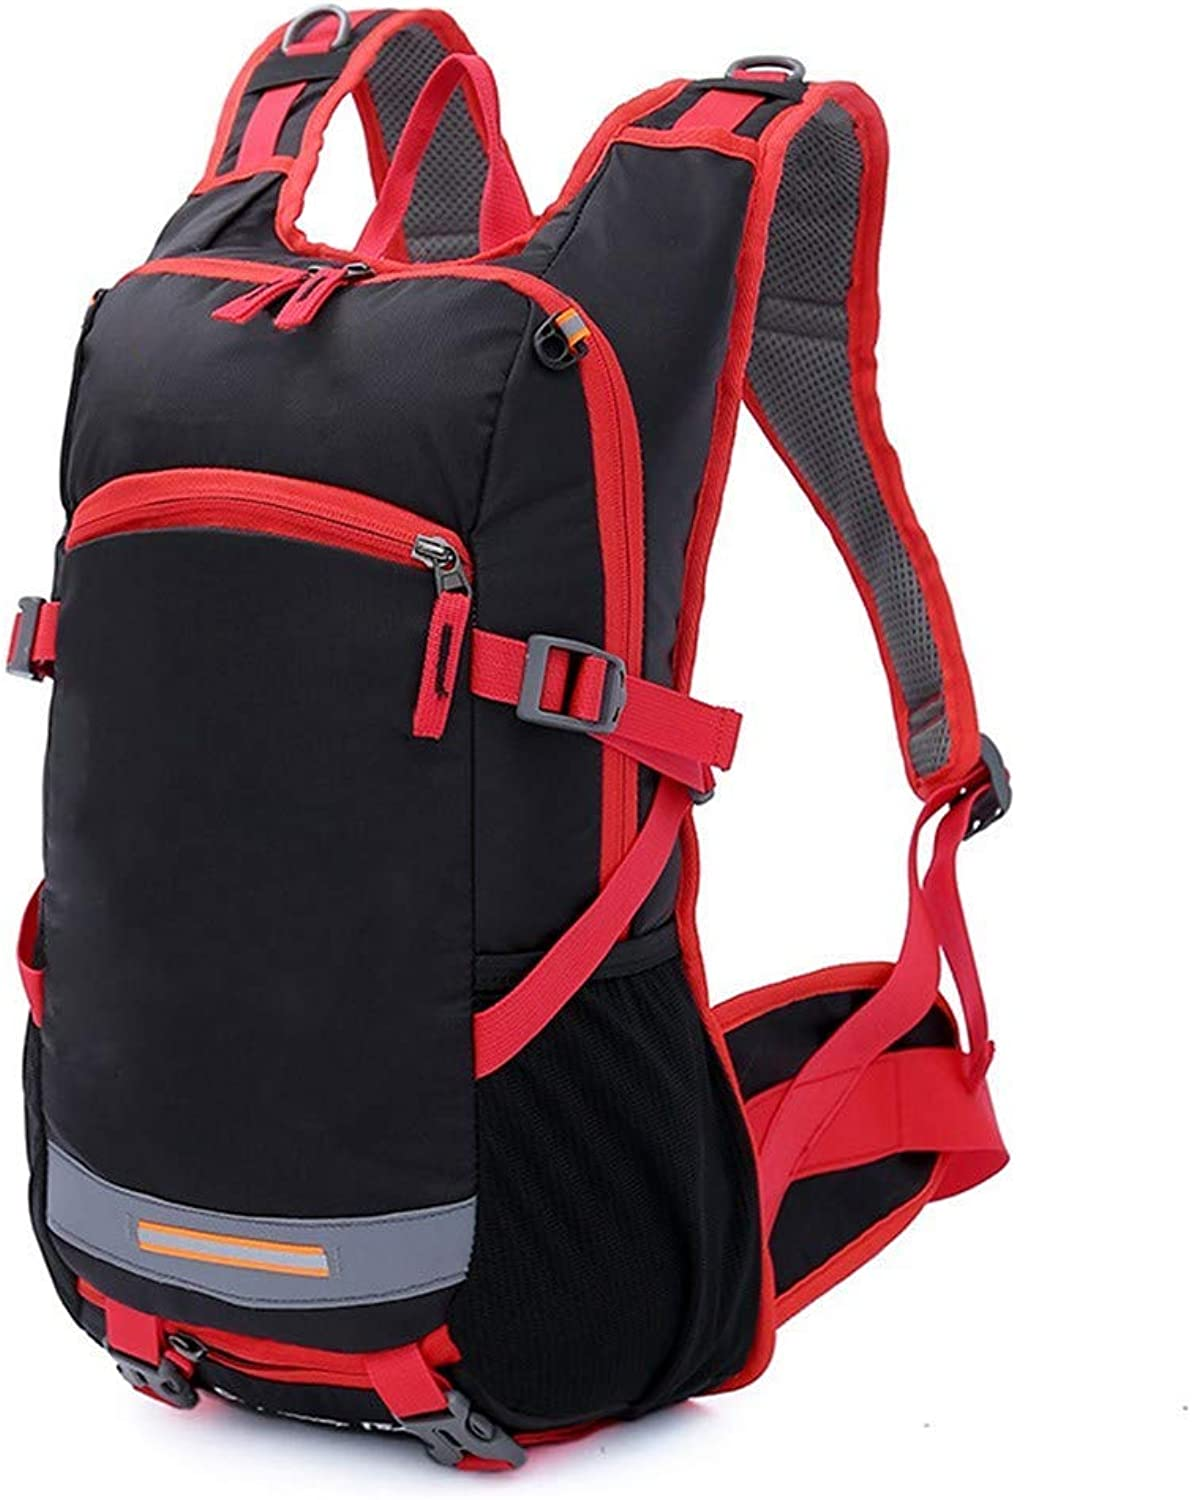 DYR Mountaineering Bag Student Outdoor Riding Bag Sports Water Bag Bag Male and Female Travel Bag Mountain Bike Equipment